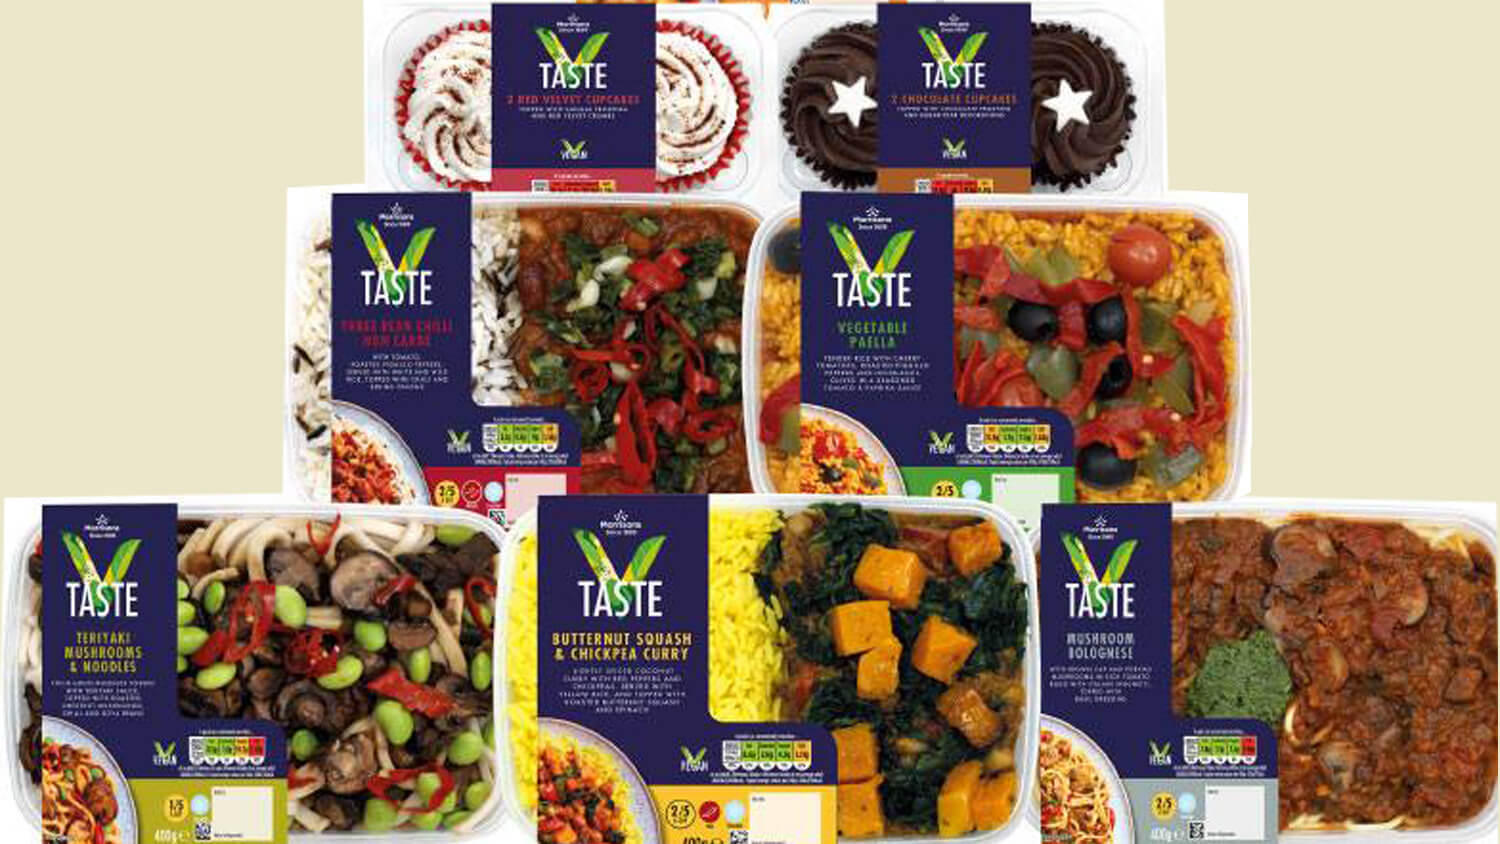 Morrisons Launches V Taste, Own-Brand Vegan Ready Meal Range of Burgers, Curries, and Cupcakes